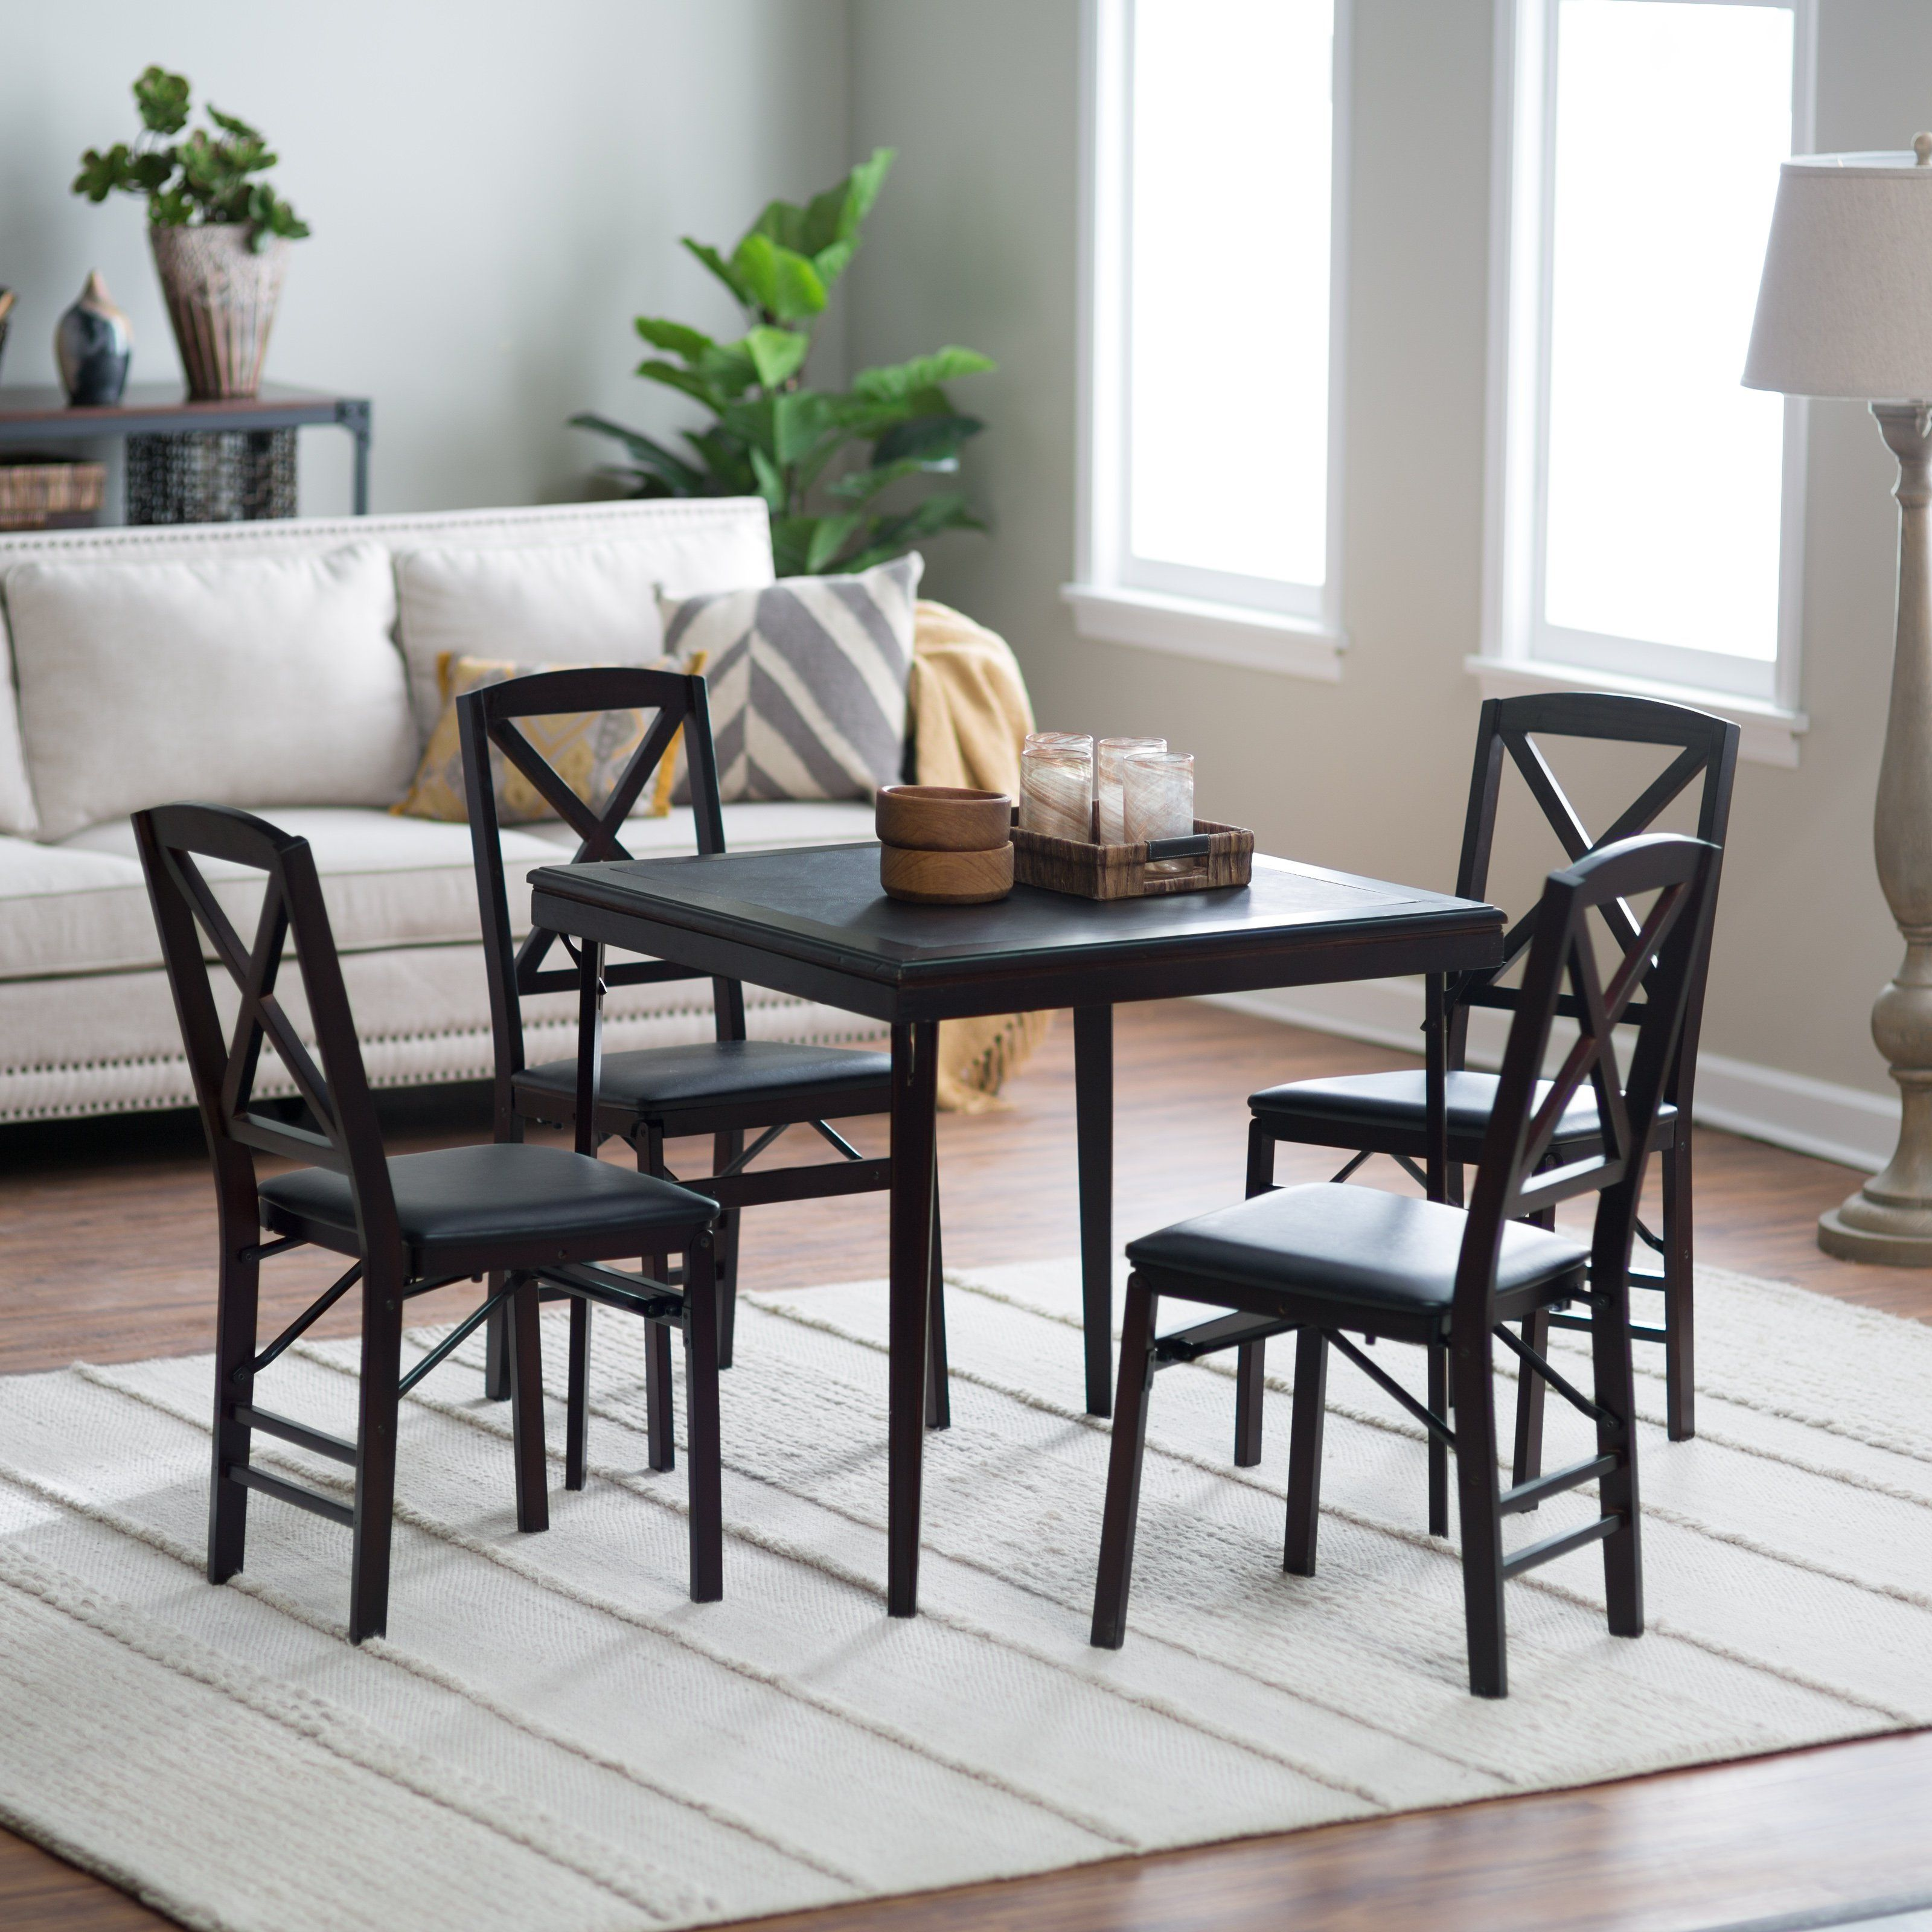 Card Table And Chair Set Office Chairs Mesh Buy Cosco 5 Piece Bridgeport 32 Inch Wood Folding Stylish View Ratings Reviews Or Browse Similar